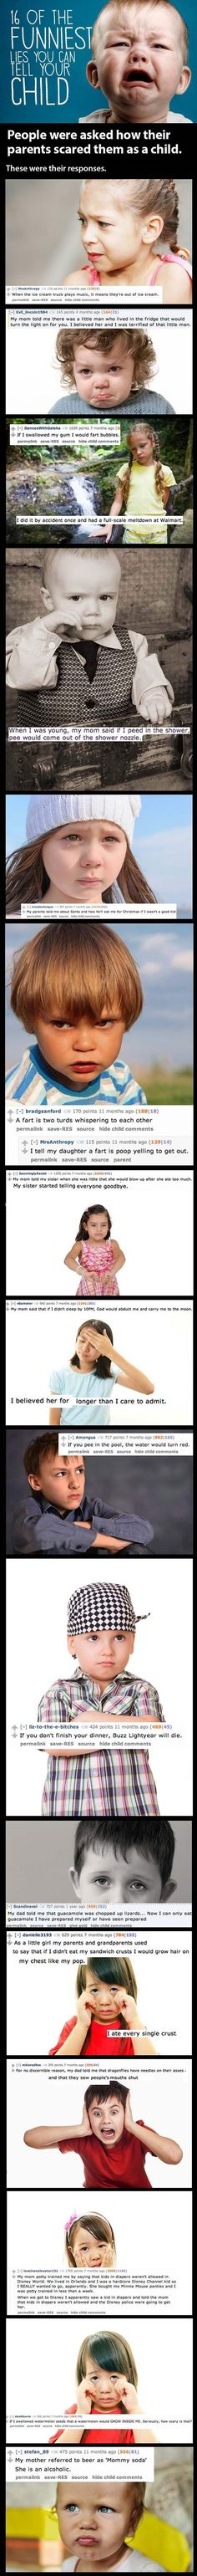 When parents lie to their children. Some of these are horrible!